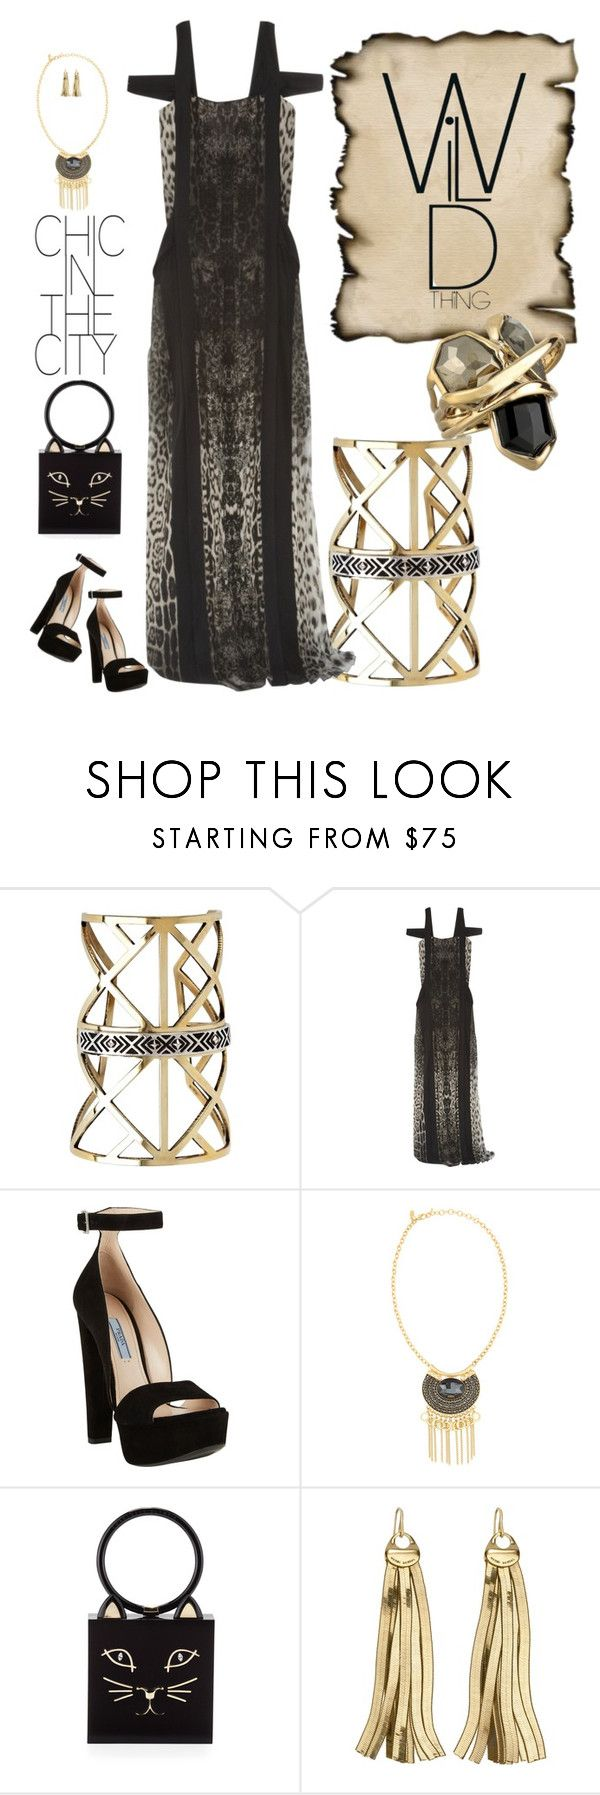 """Fantasy tag sale - getting ready for spring!"" by riquee ❤ liked on Polyvore featuring Pamela Love, Roberto Cavalli, Prada, Emily & Ashley, Charlotte Olympia, Henri Bendel and Alexis Bittar"